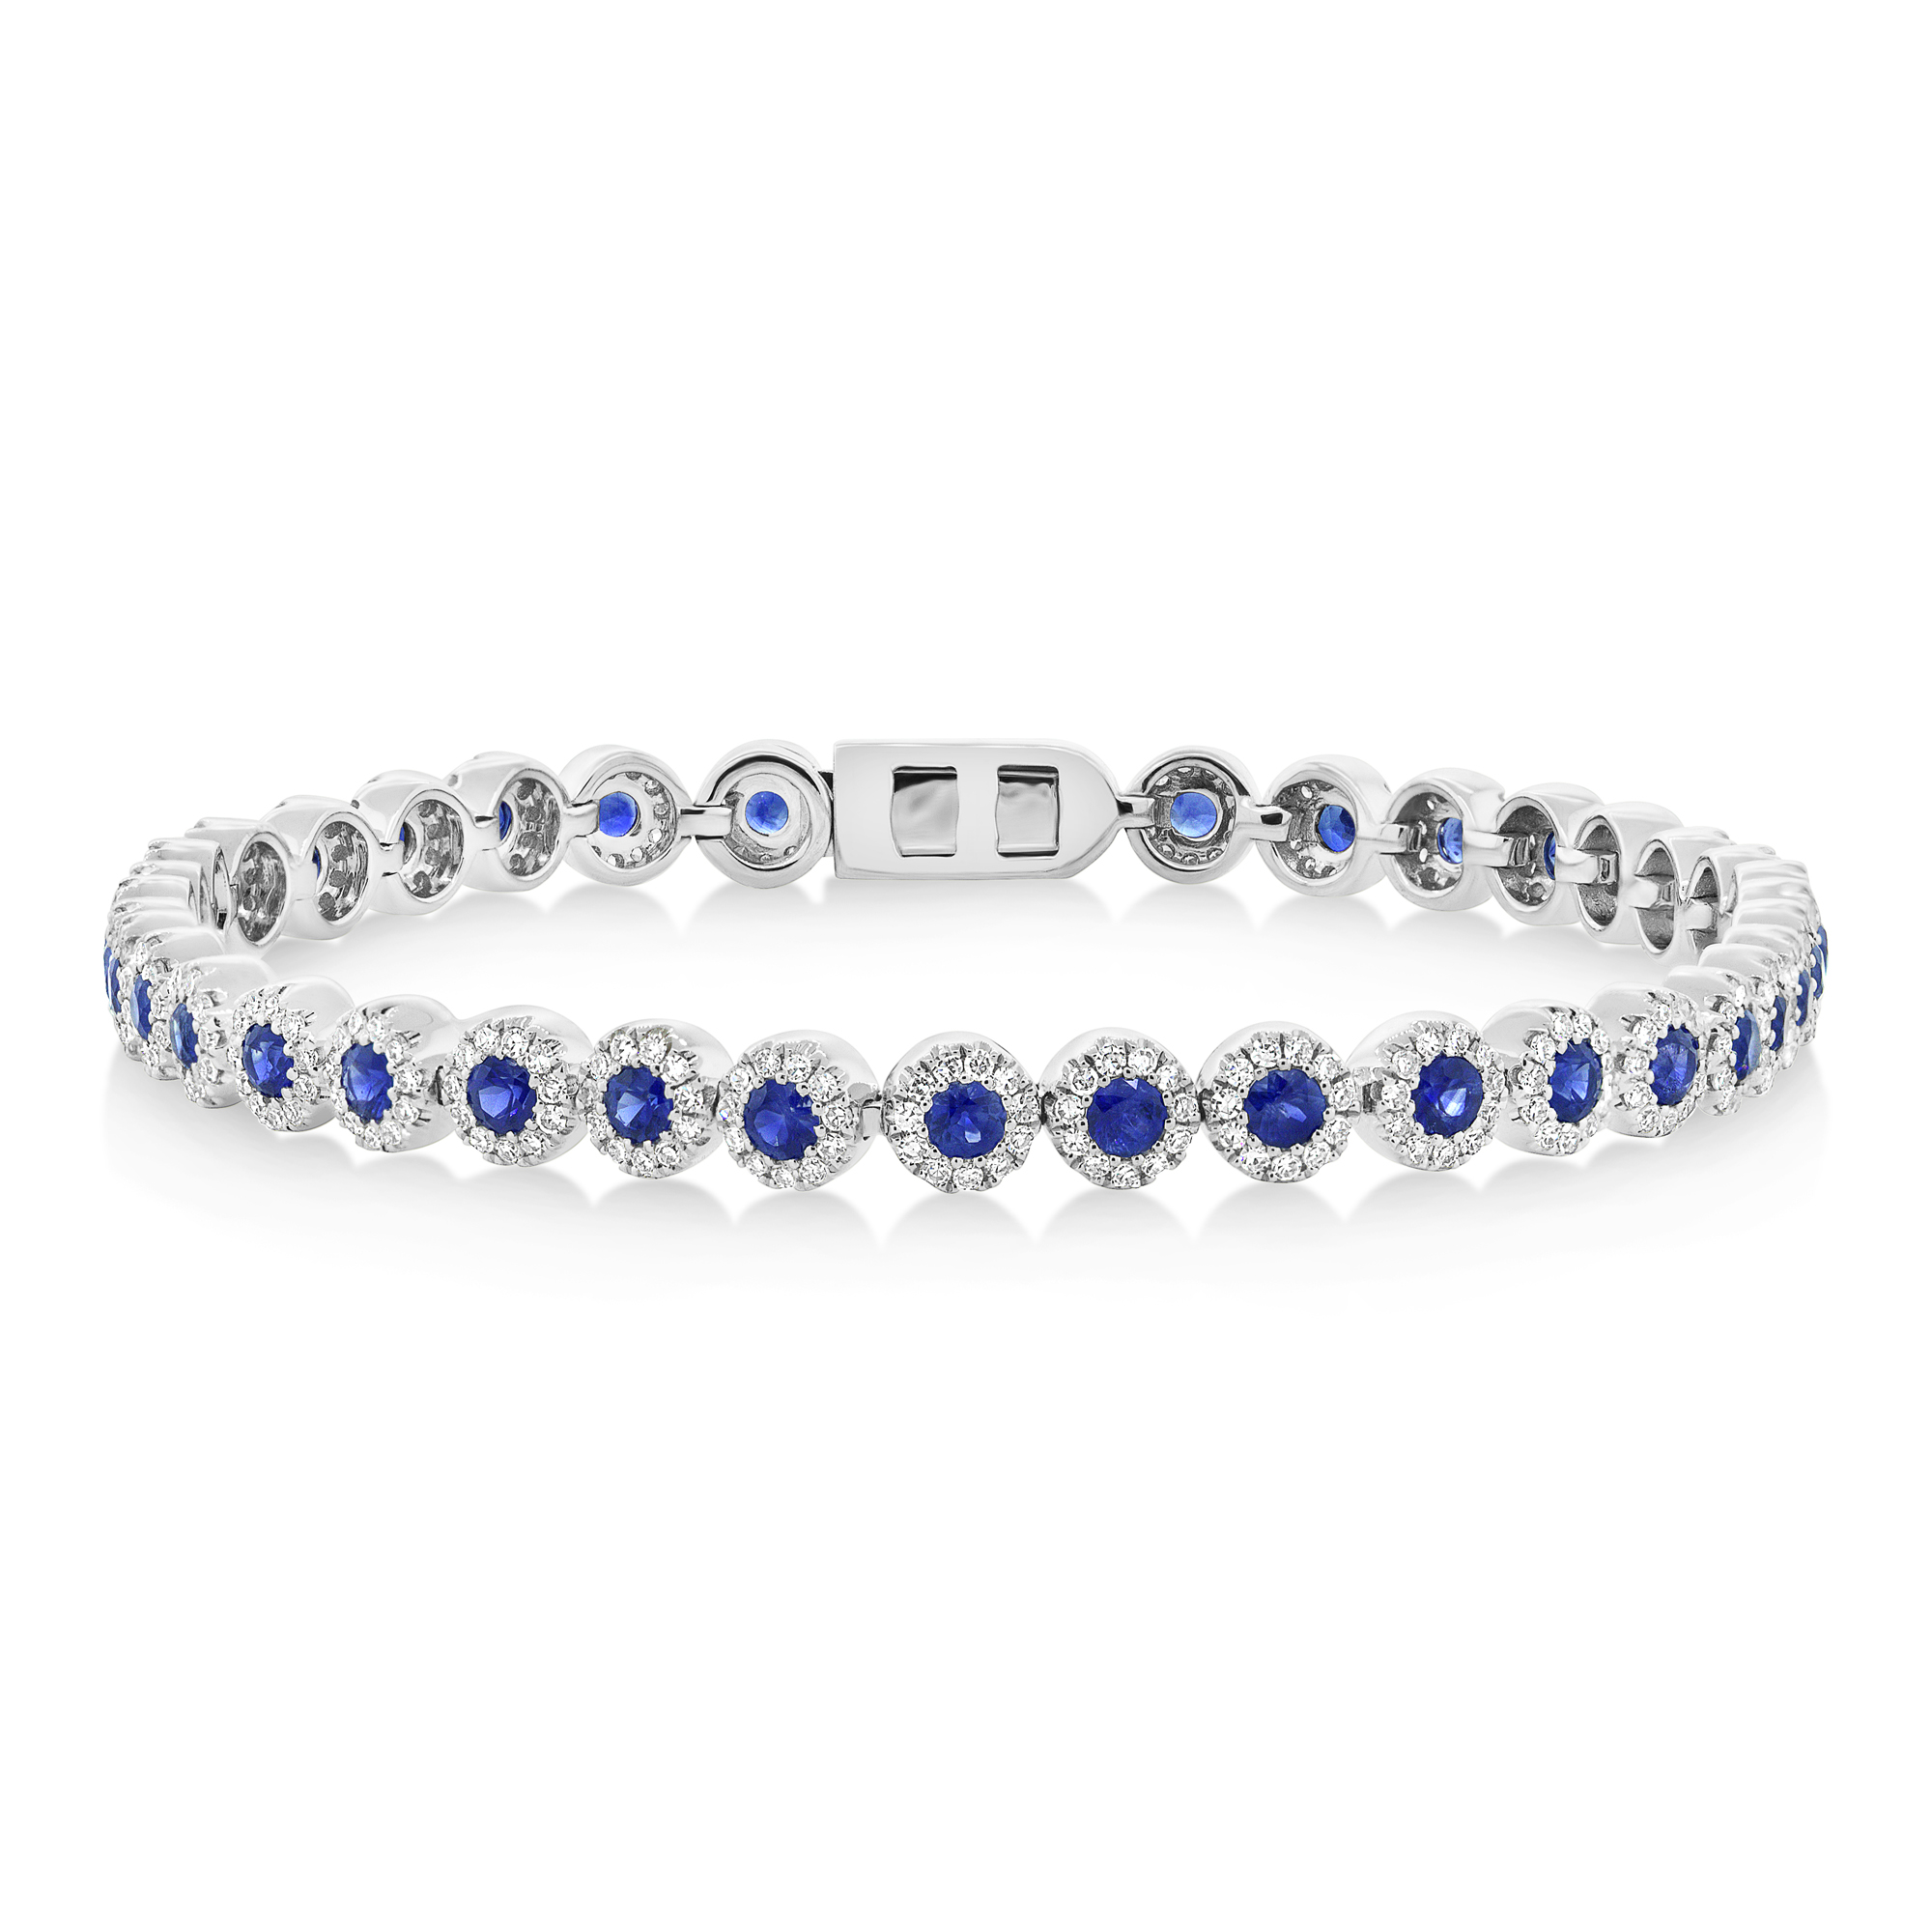 blue sapphire collections cartier bracelet and eleuteri diamond flexible